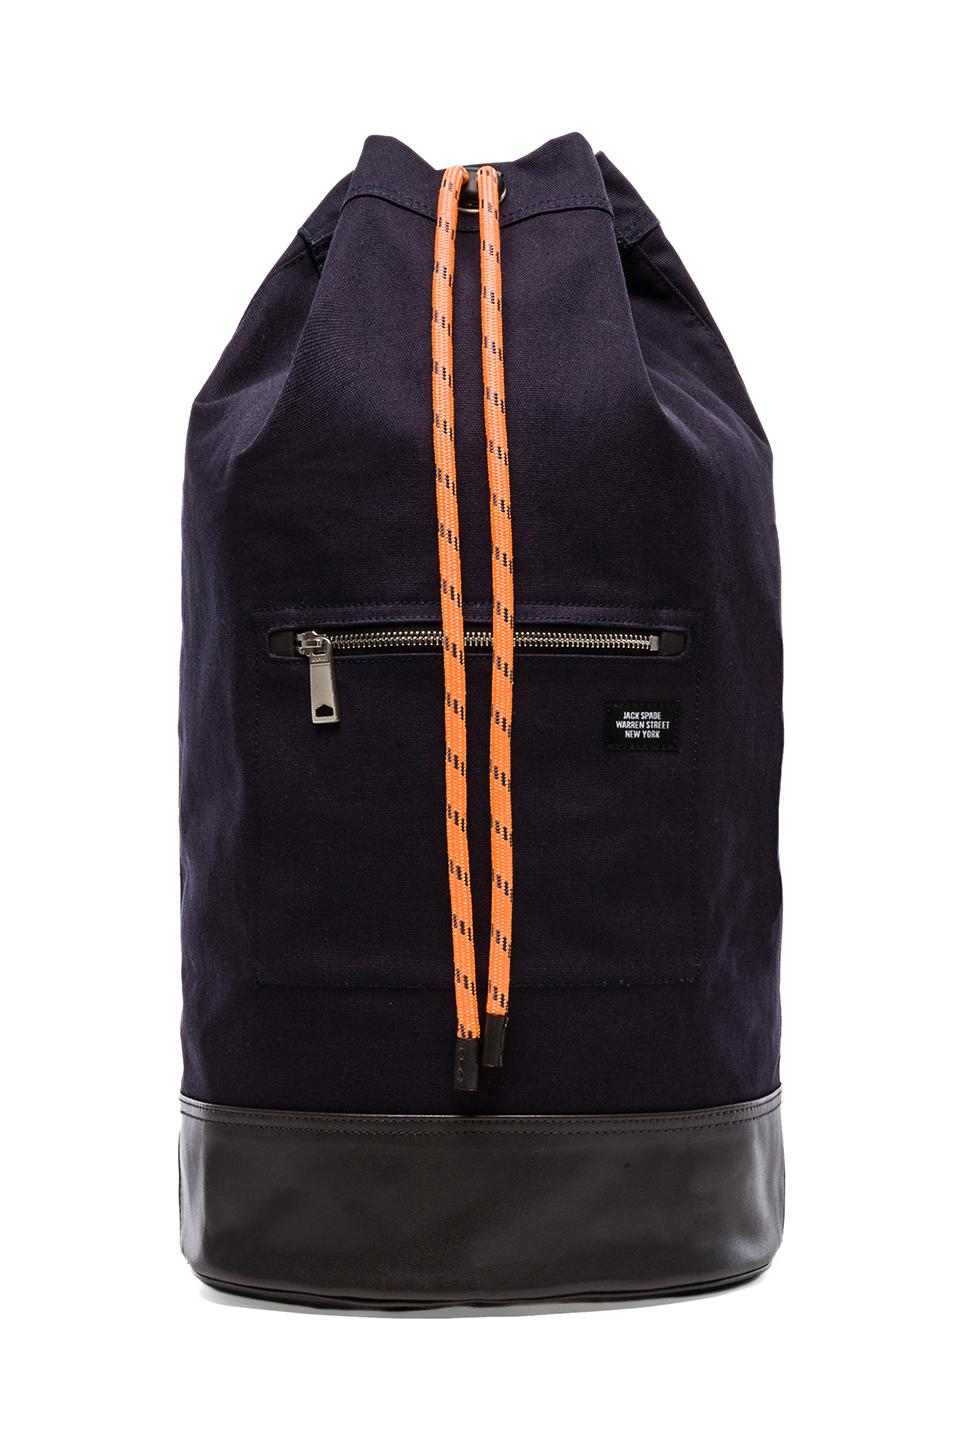 Jack Spade Rope Canvas Cinch Backpack in Navy